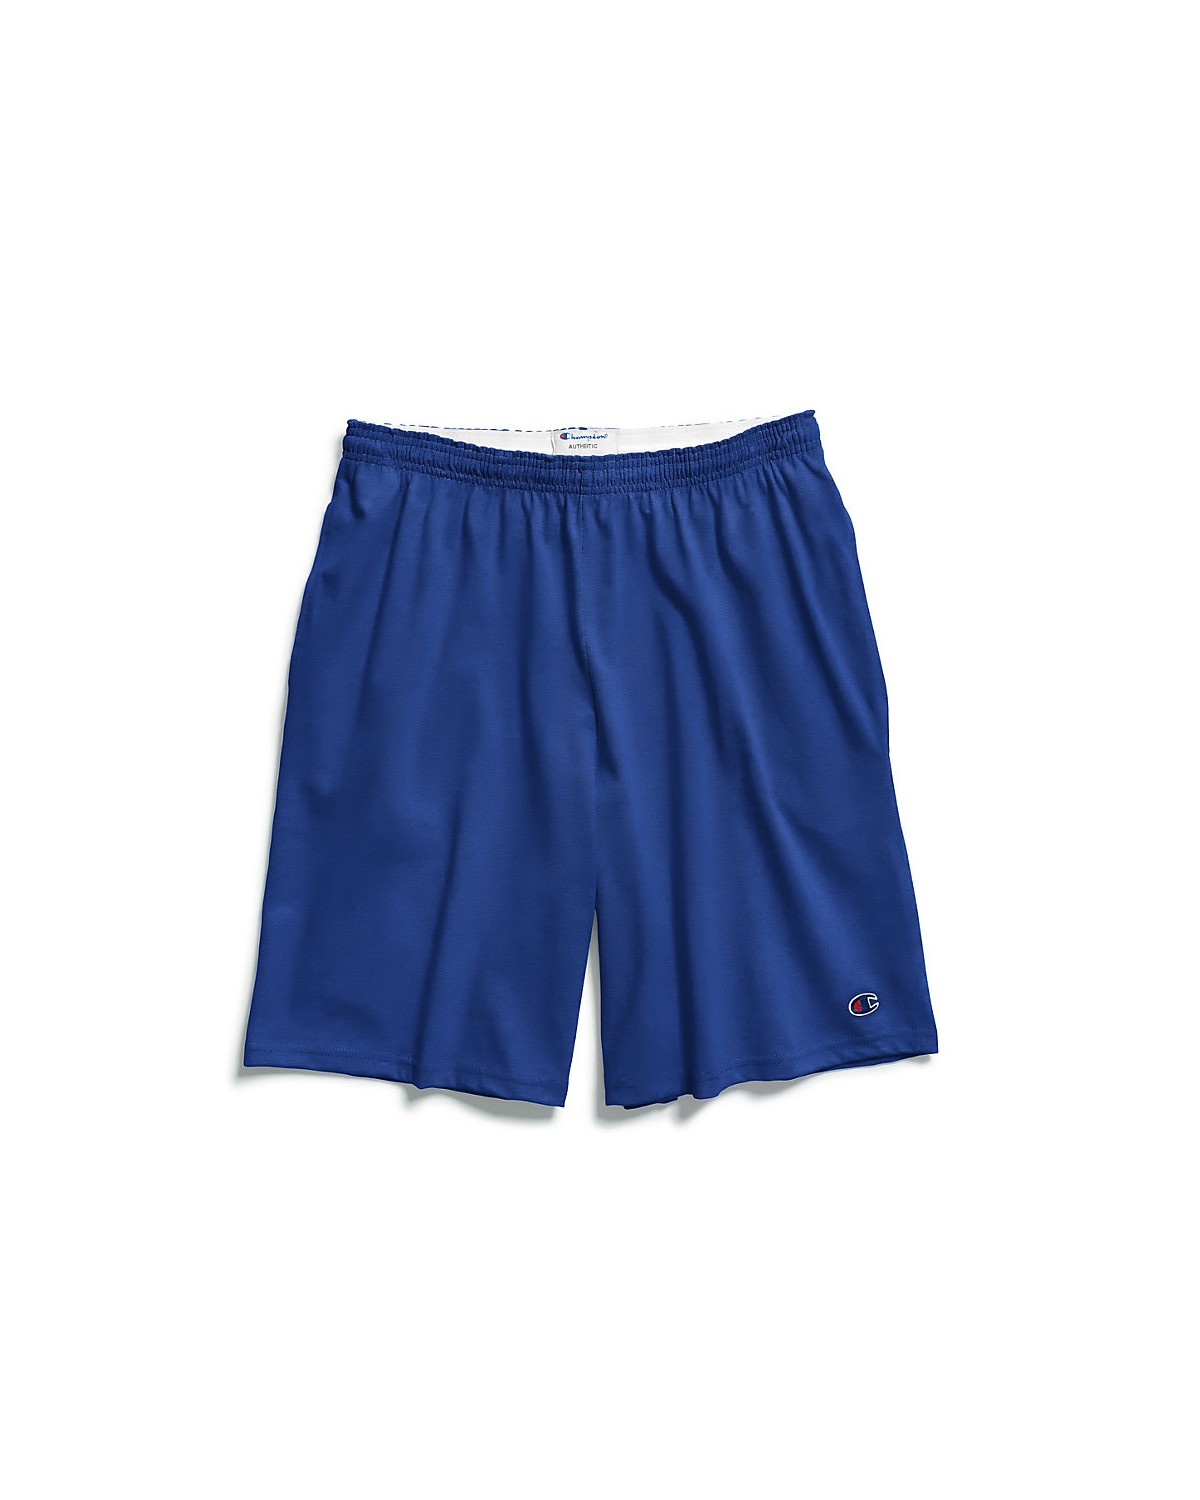 Champion Authentic Cotton 9-Inch Men/'s Shorts with Pockets 85653 407Q88